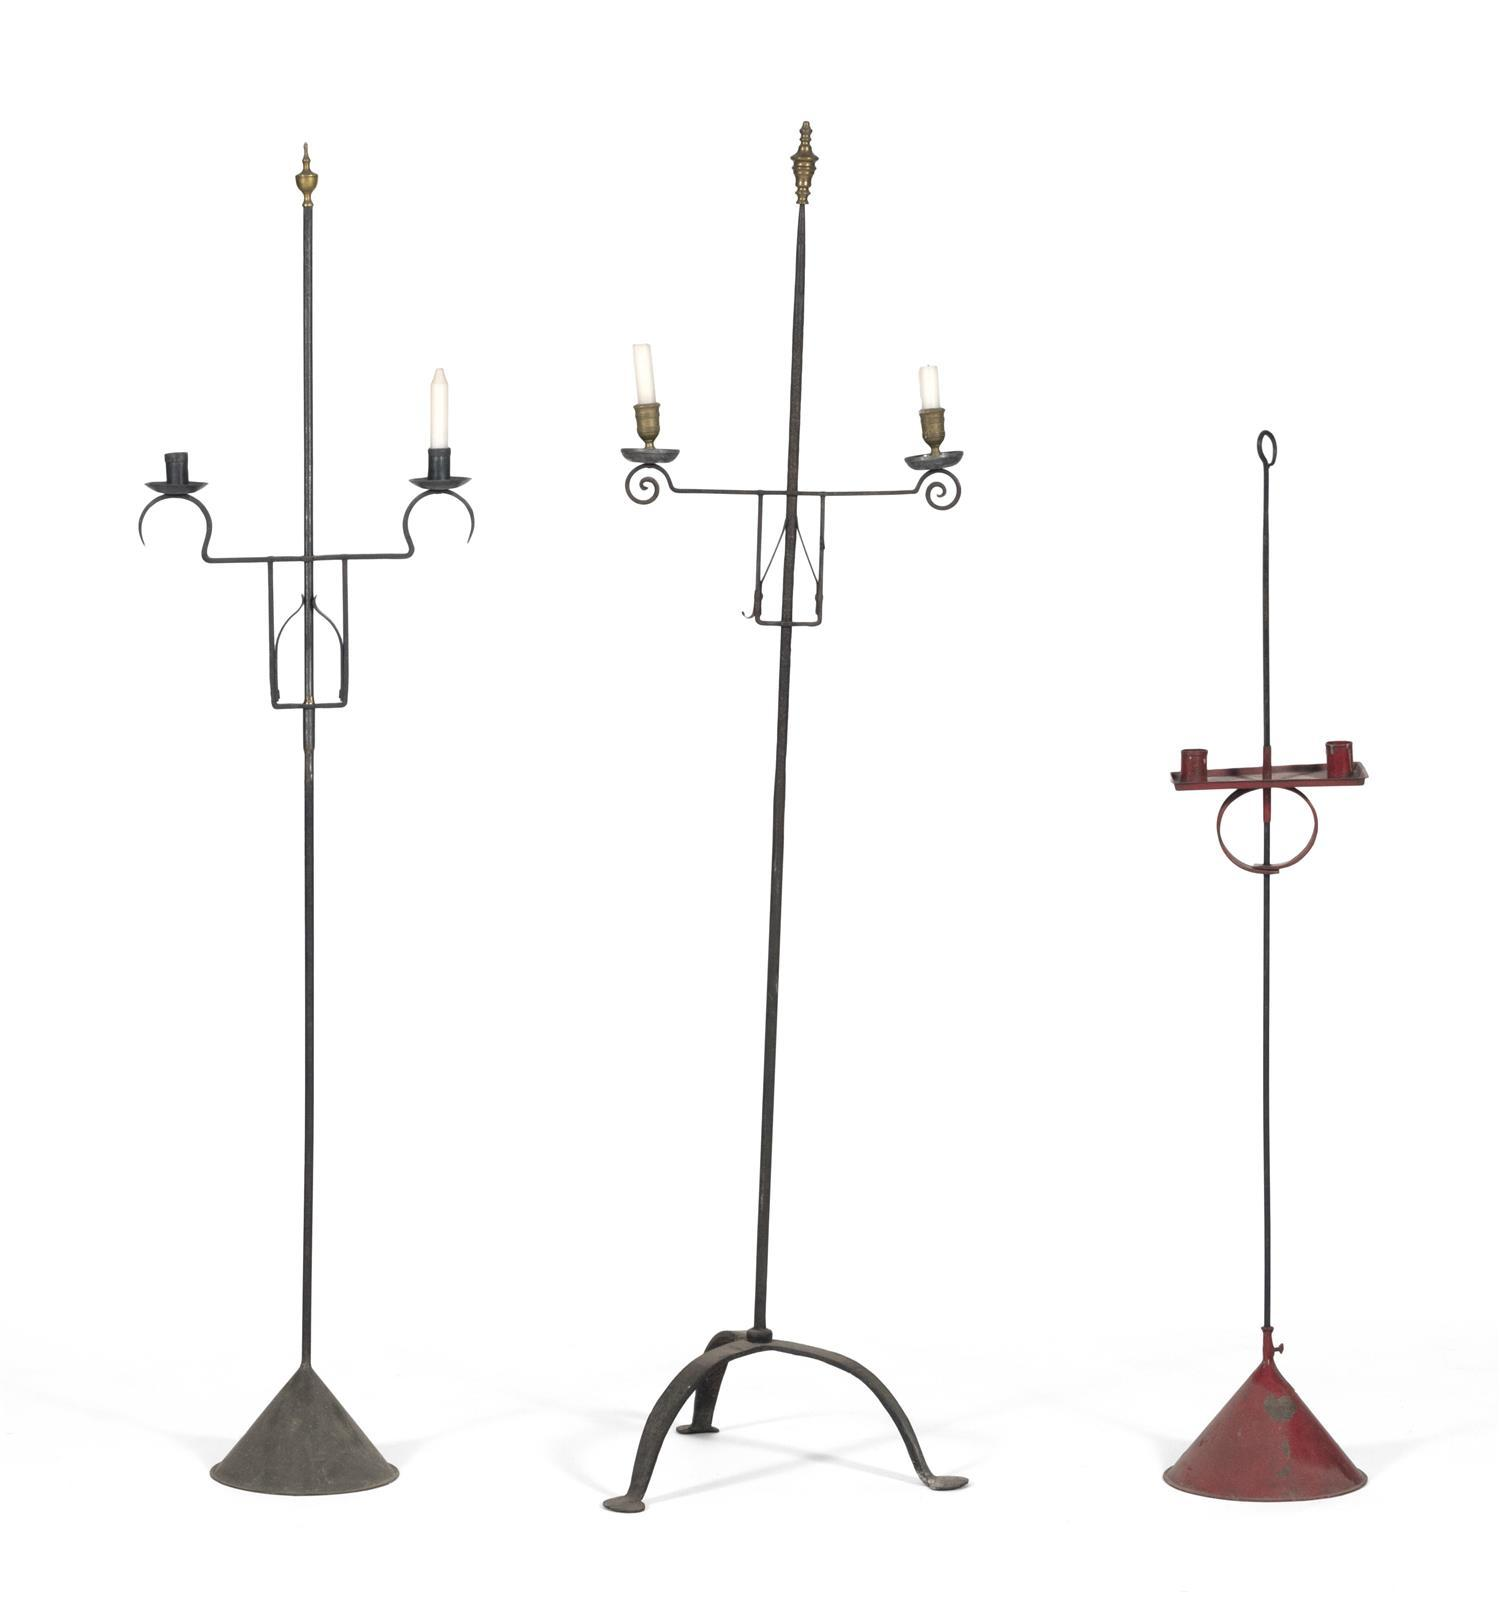 """THREE ADJUSTABLE IRON AND TIN CANDLESTANDS One painted red, height 45"""", and two with turned brass finials, heights 57.5"""" and 58""""."""